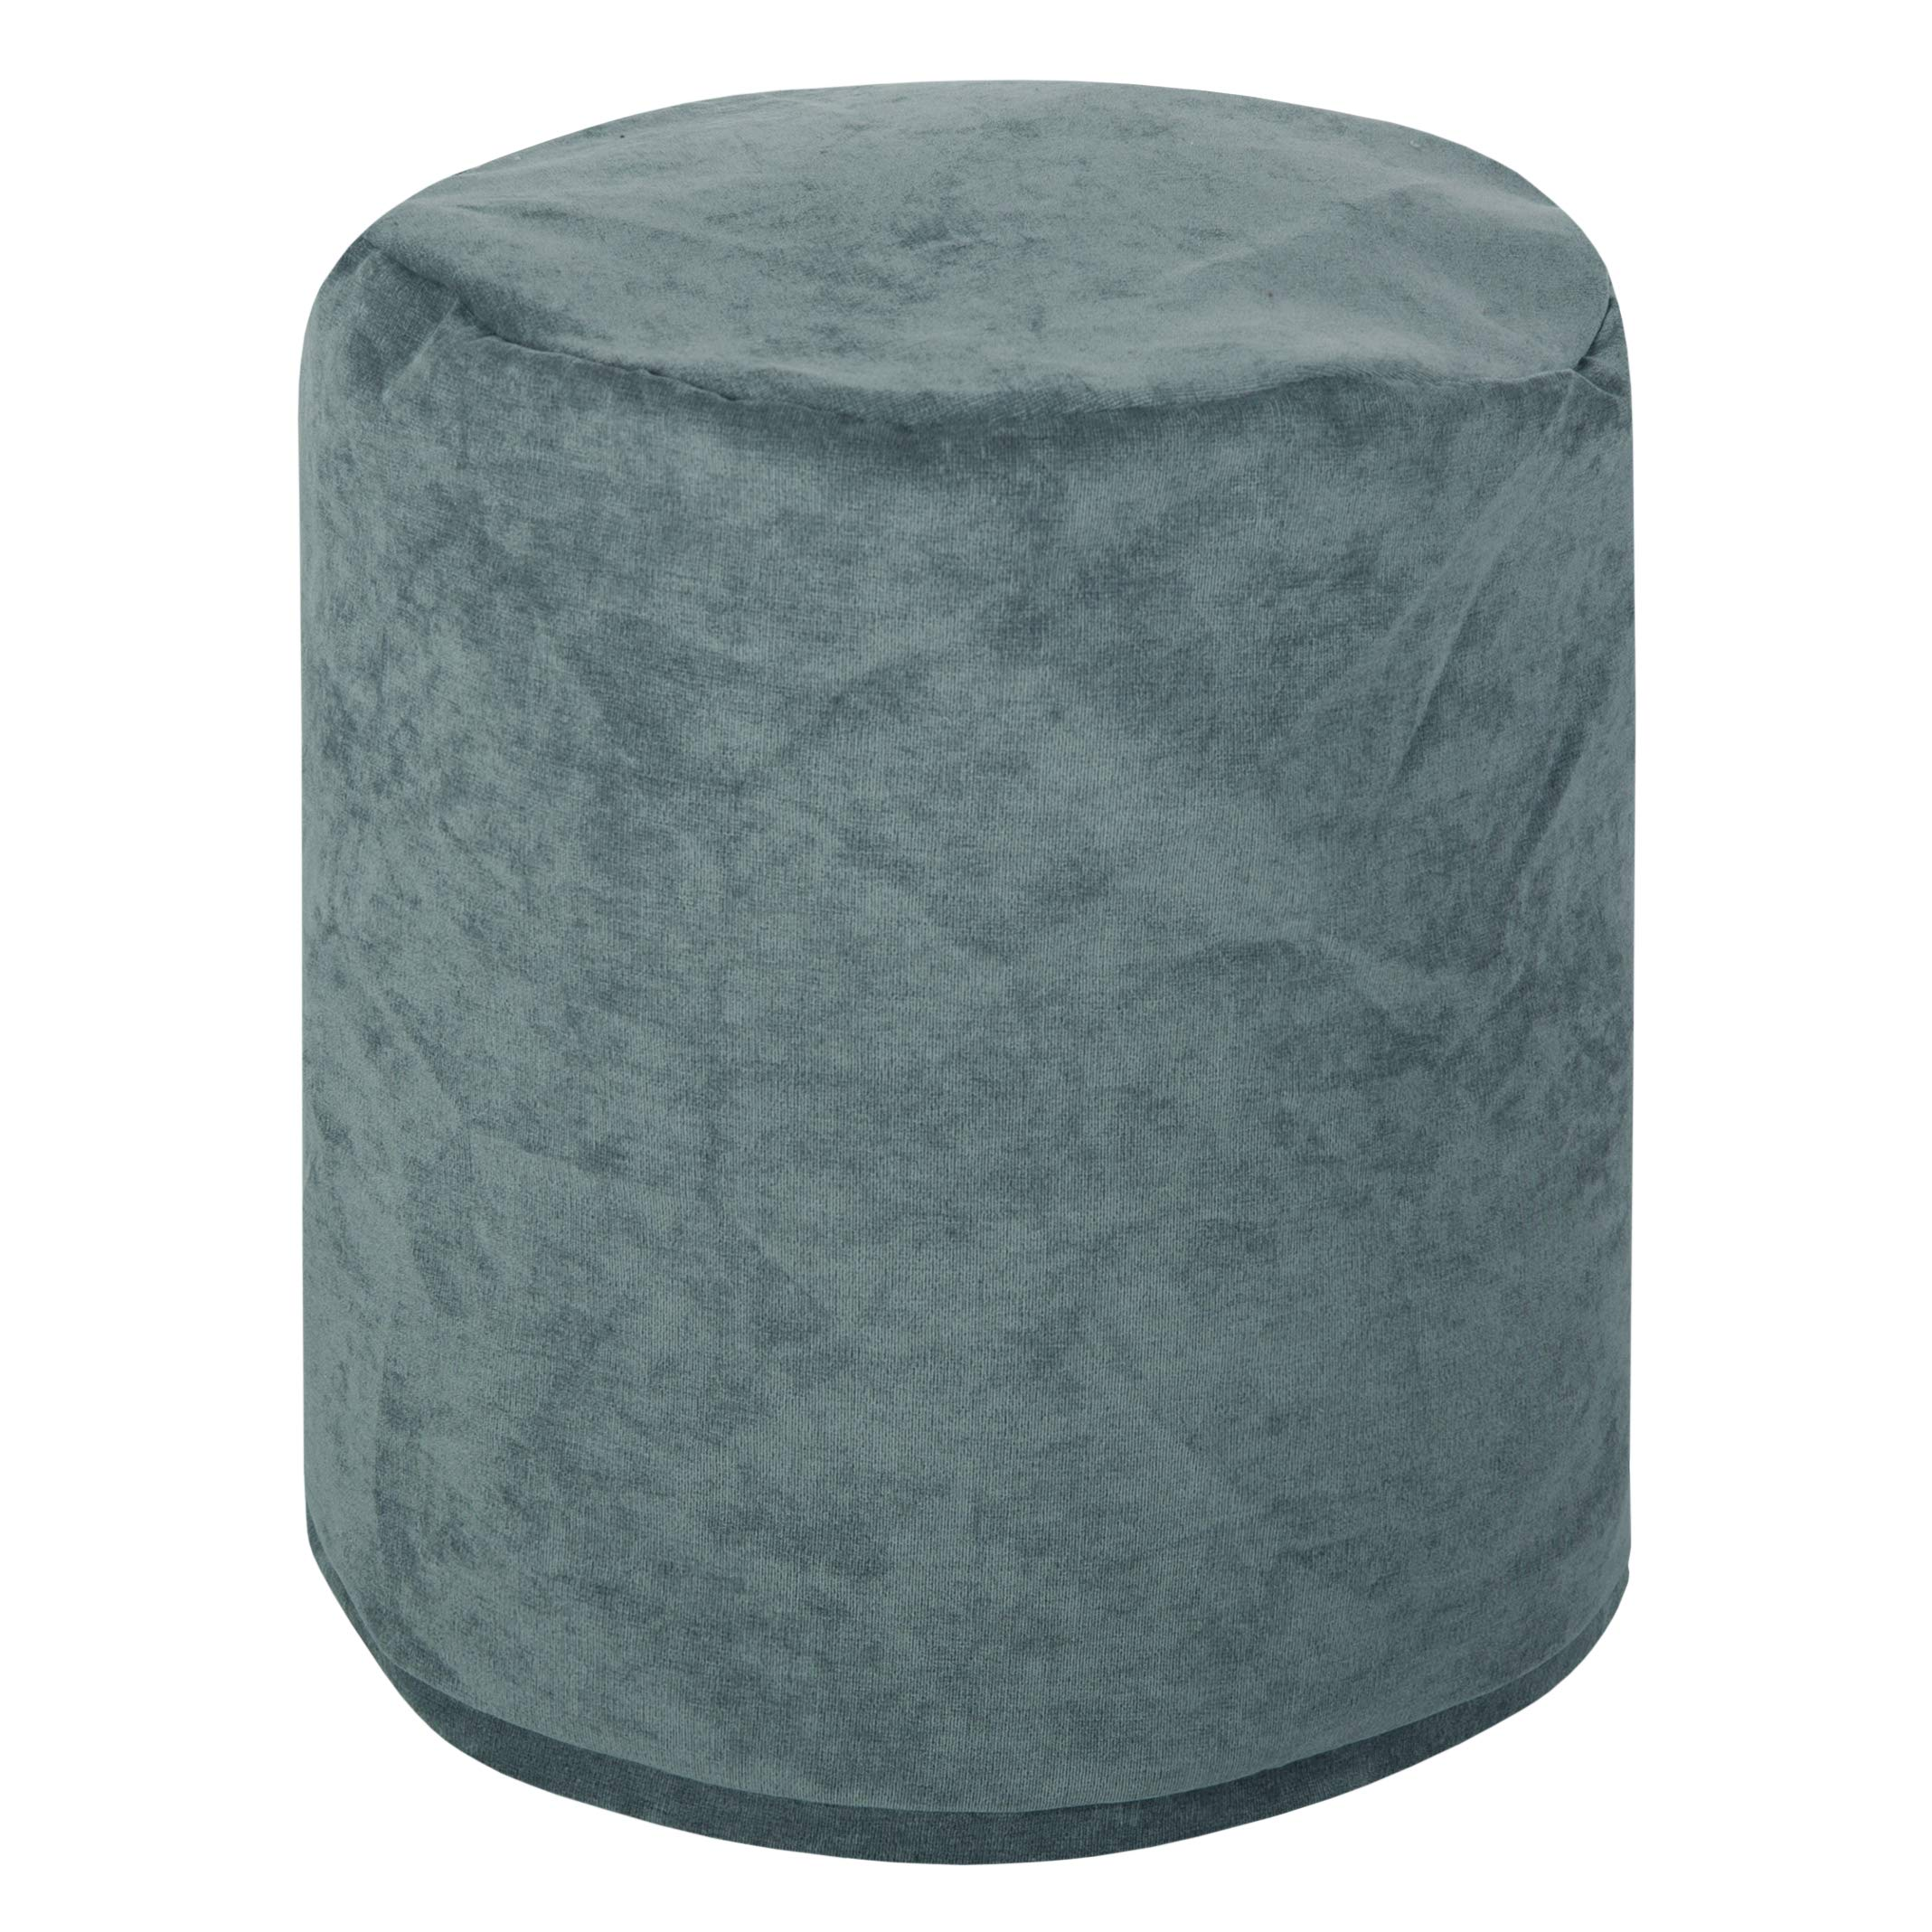 Majestic Home Goods Azure Villa Indoor Bean Bag Ottoman Pouf  16'' L x 16'' W x 17'' H by Majestic Home Goods